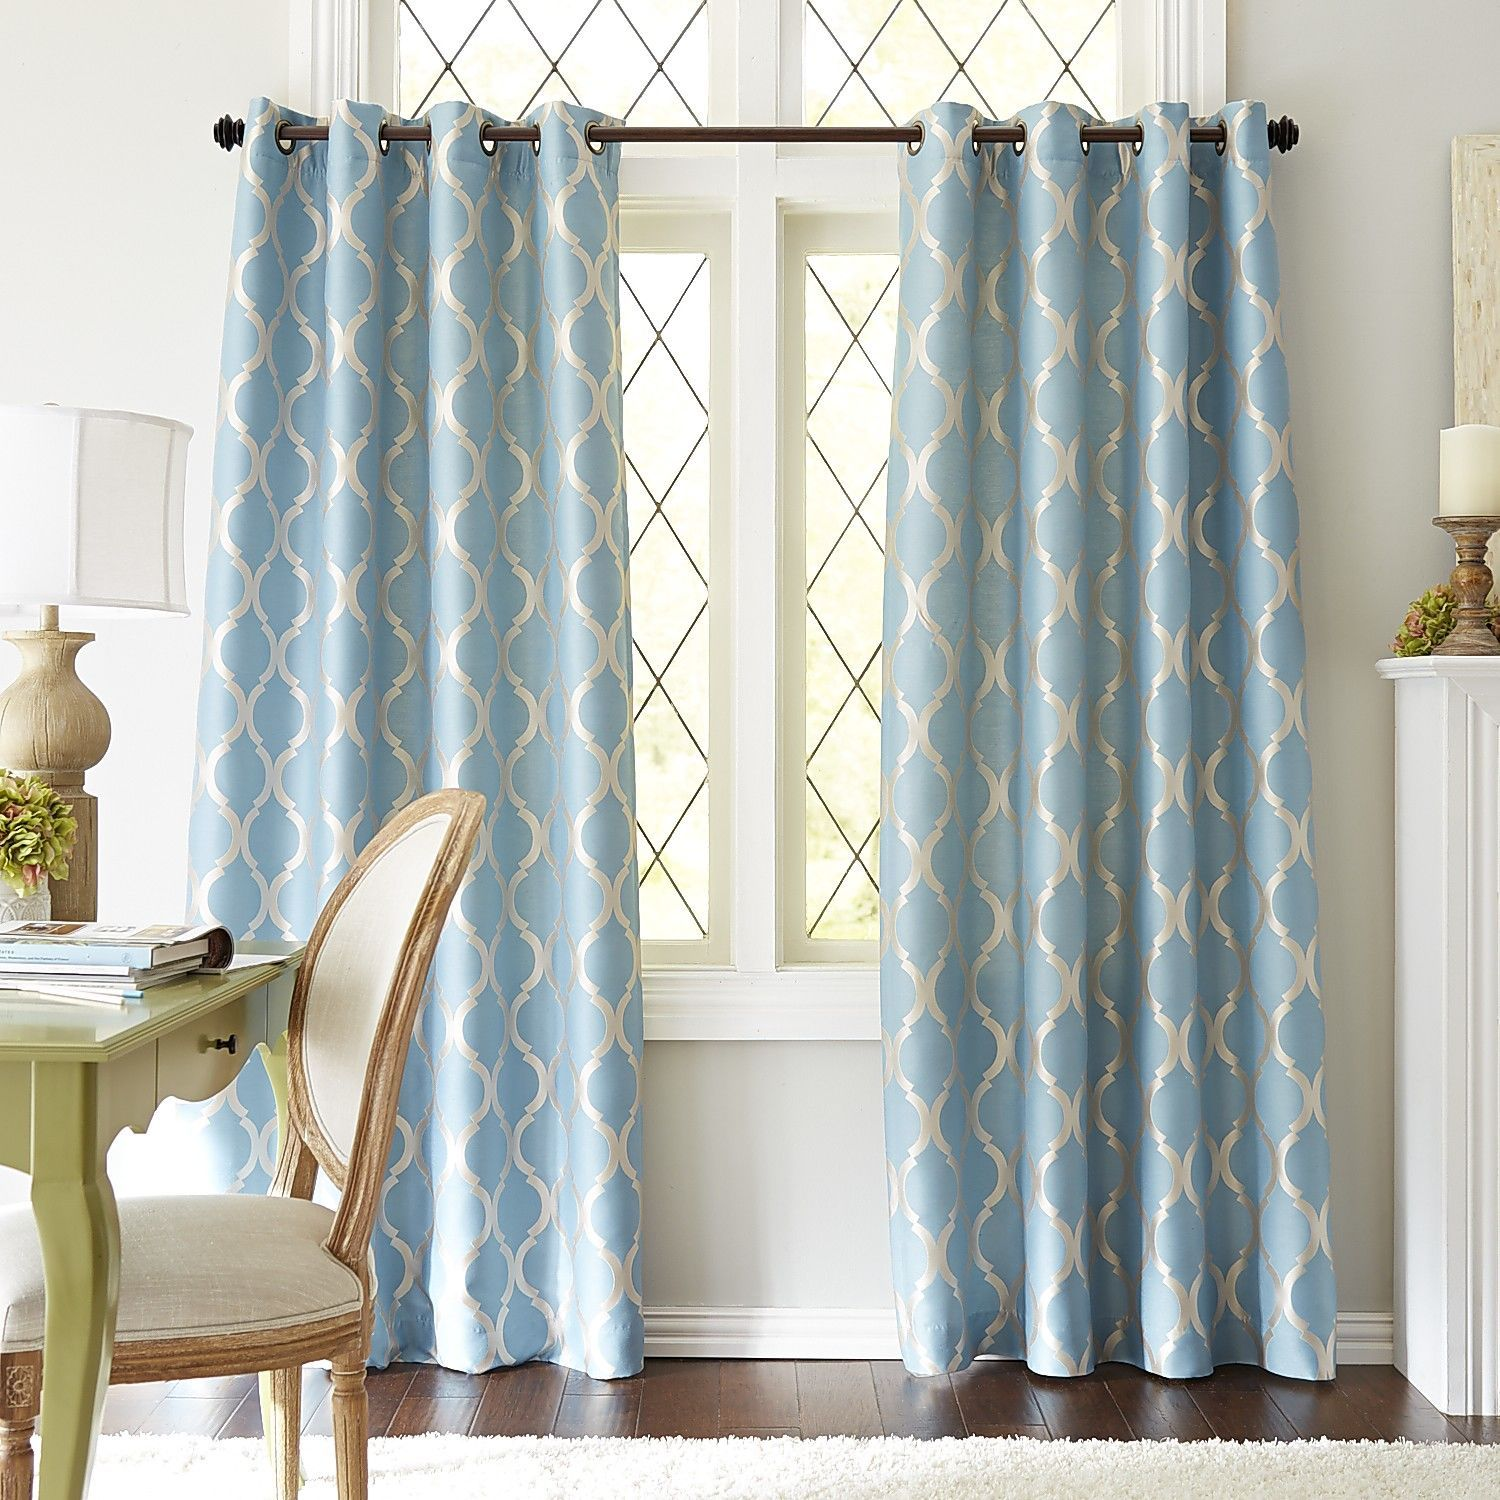 Moorish Tile Curtain Smoke Blue For the Home